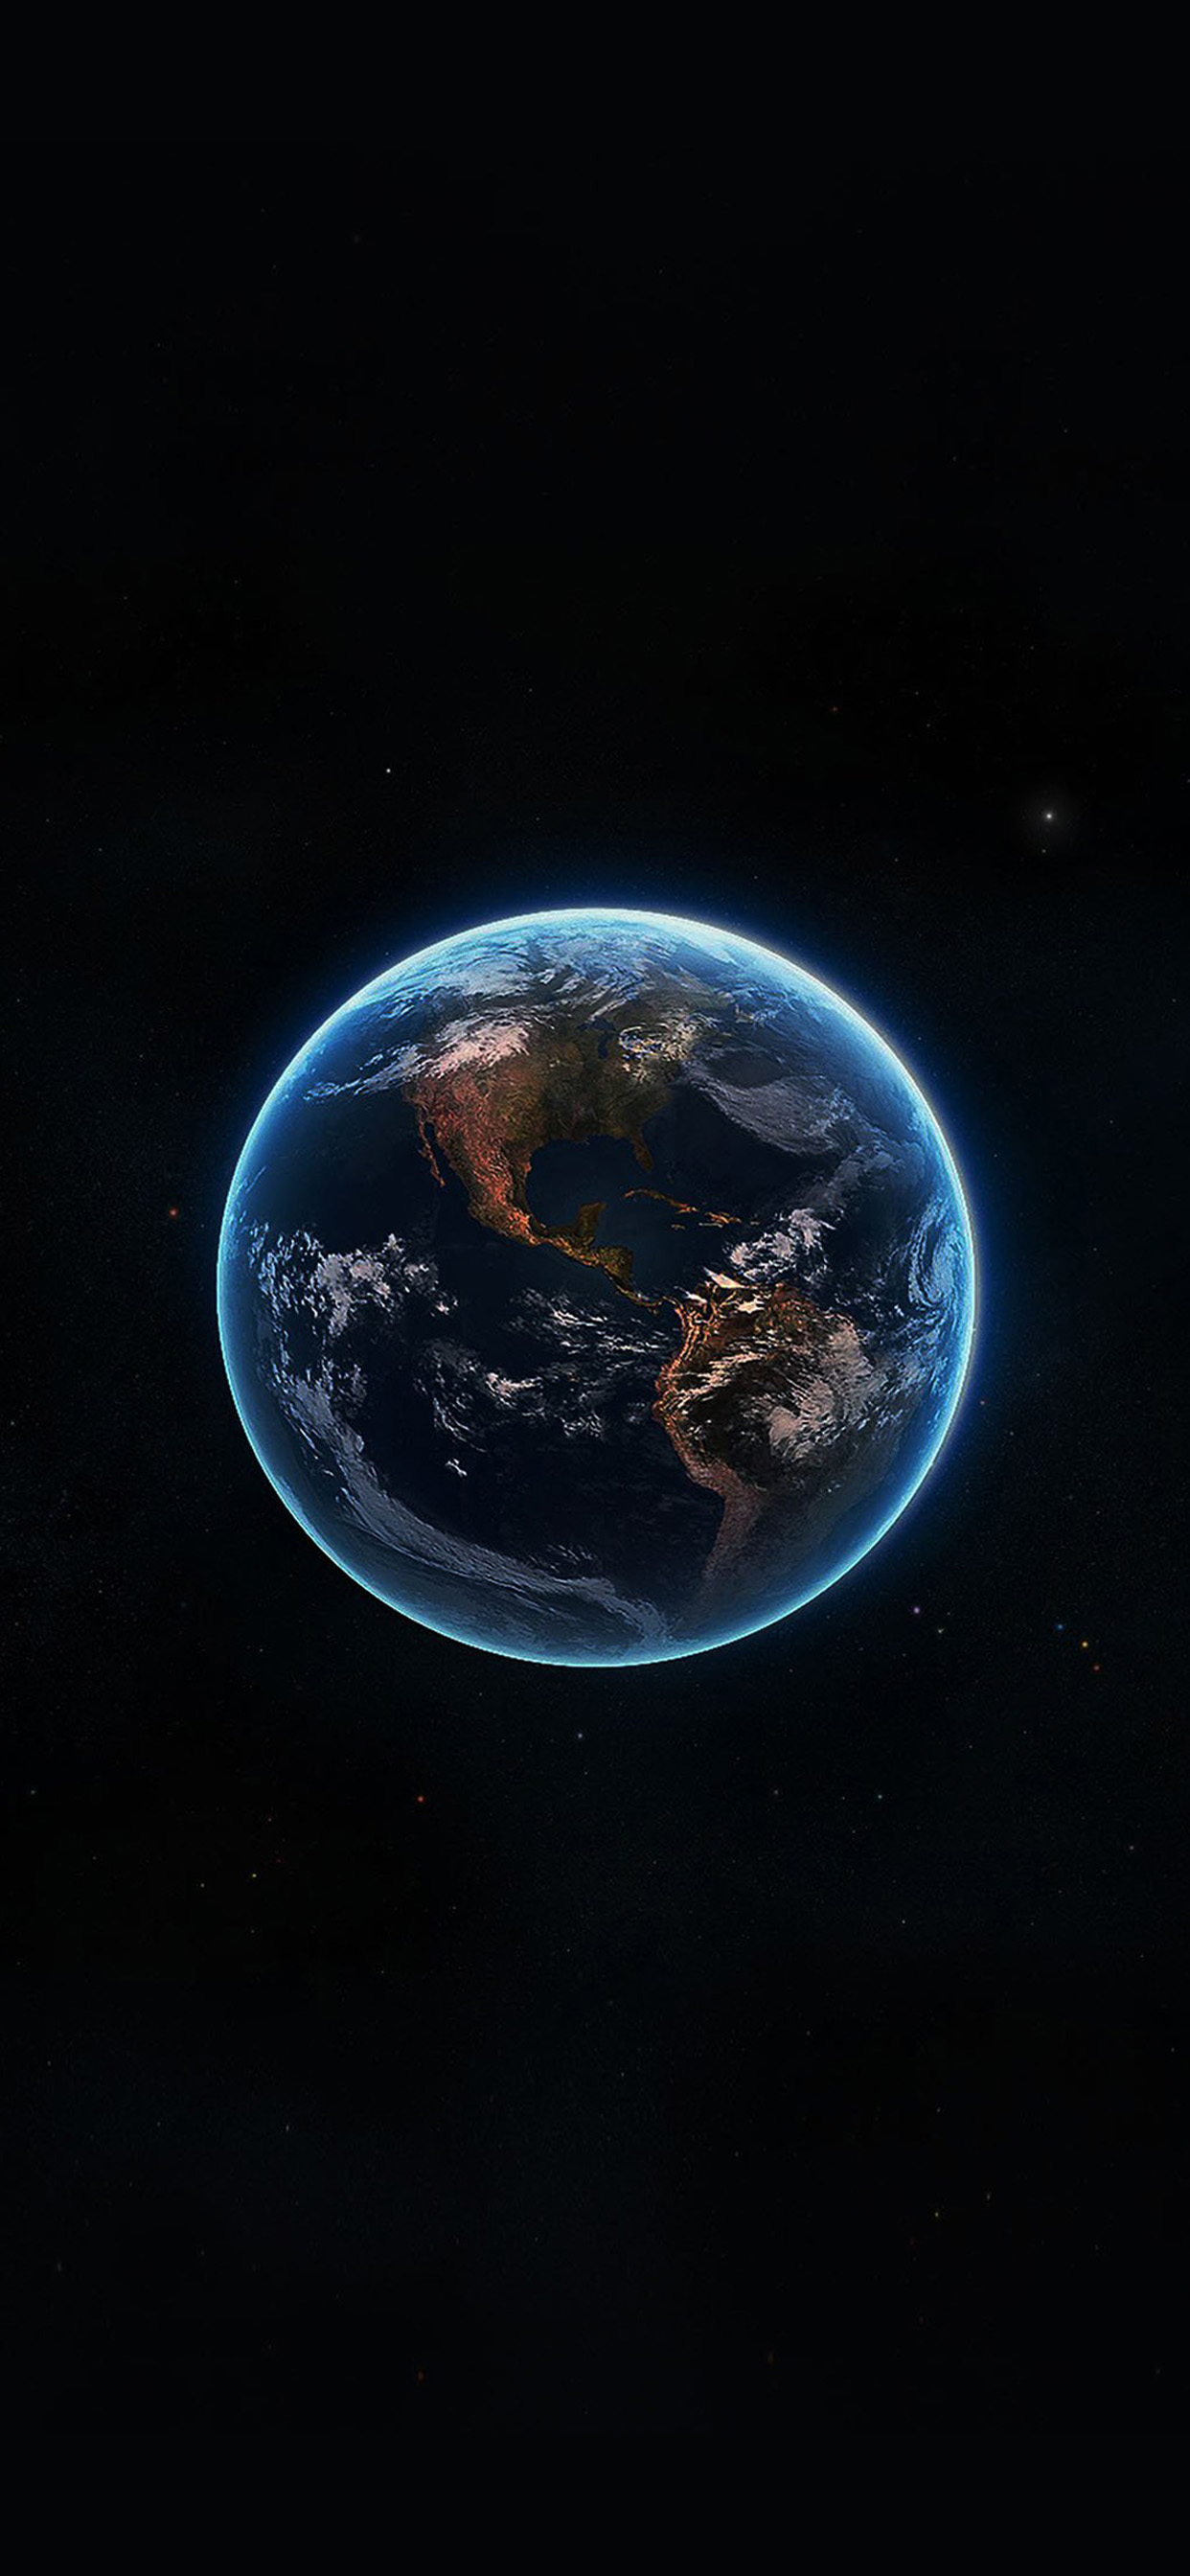 26+] IPhone XS Max Earth Wallpapers on